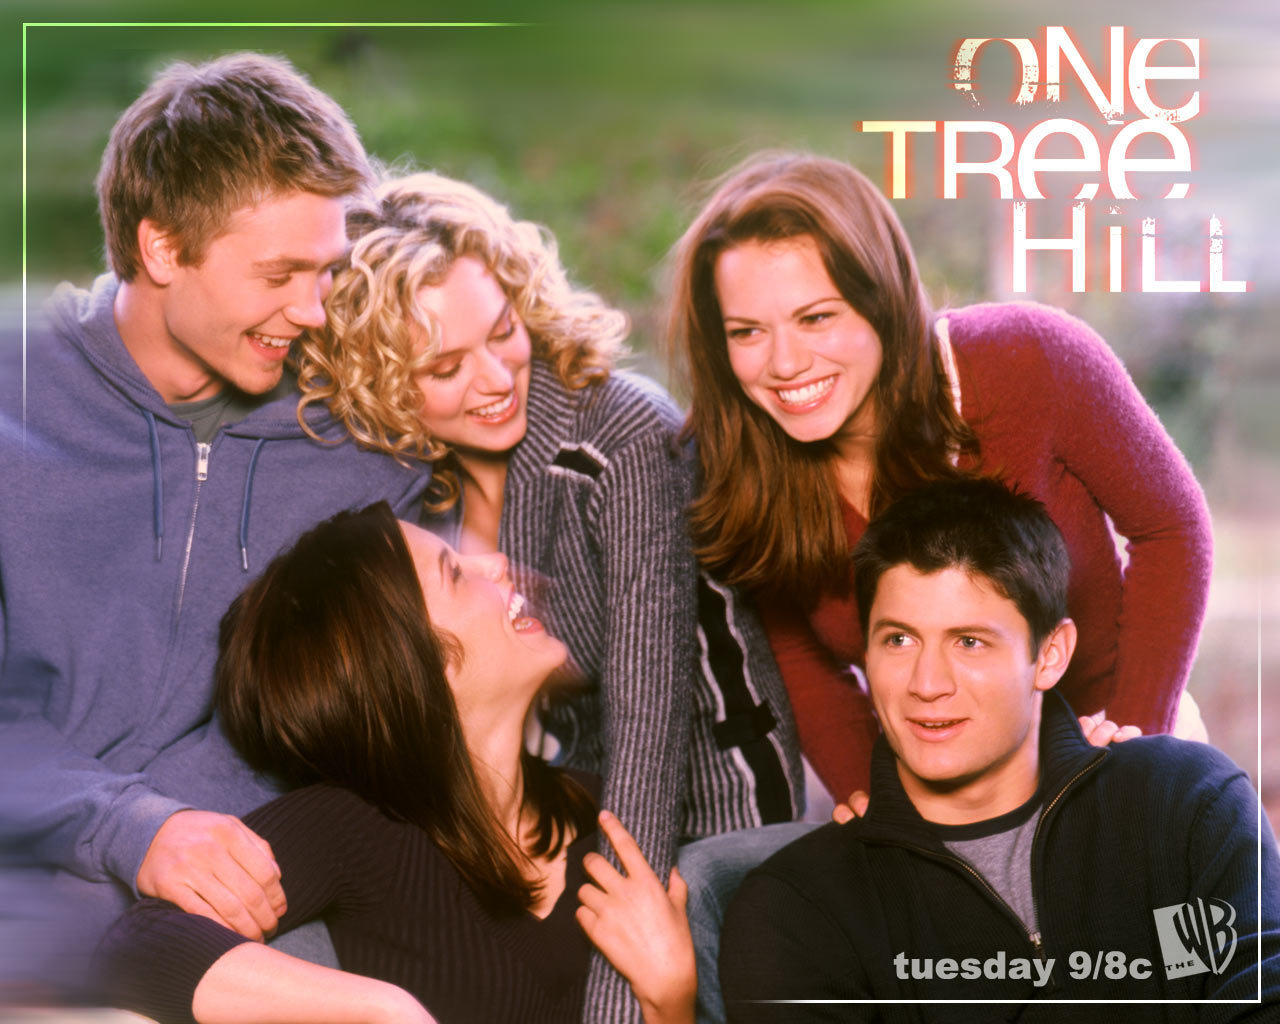 One Tree Hill Images OTH HD Wallpaper And Background Photos